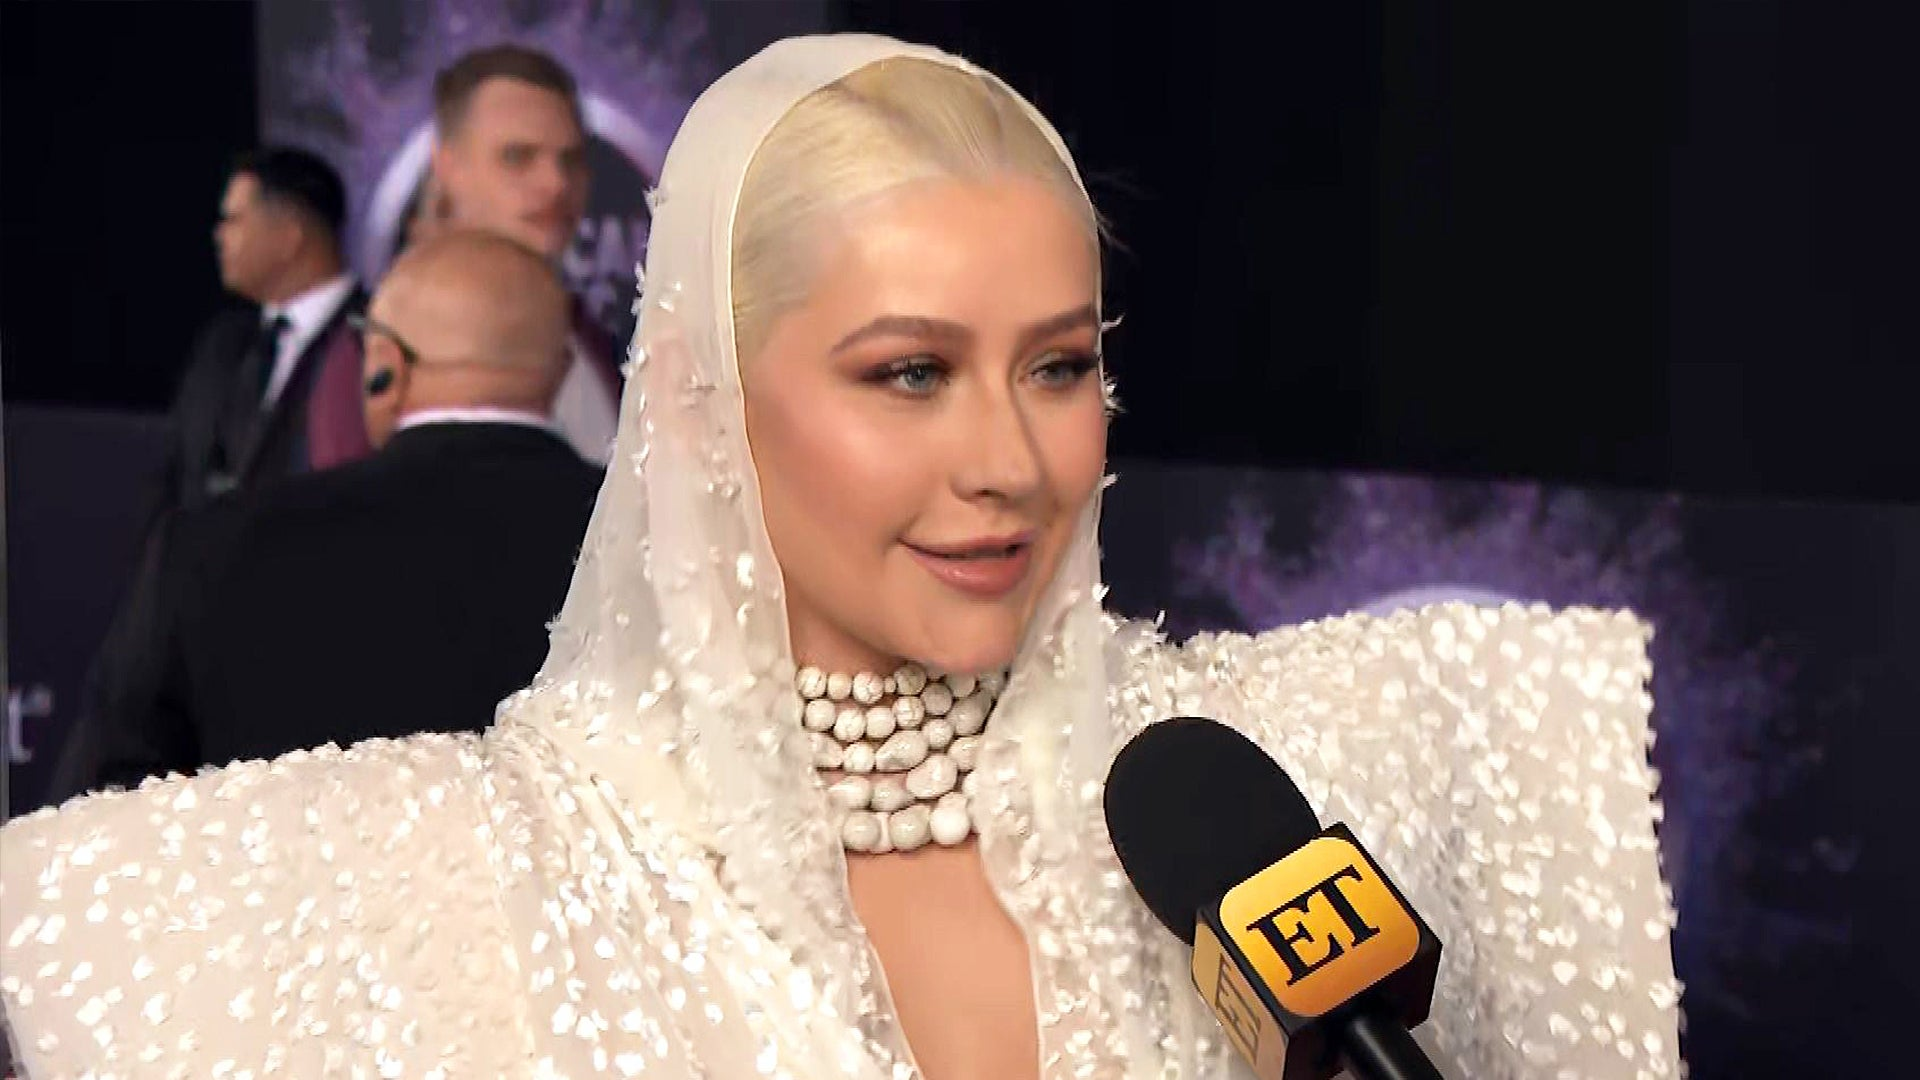 Christina Aguilera Reflects on 20 Years Since Debut Album (Exclusive)